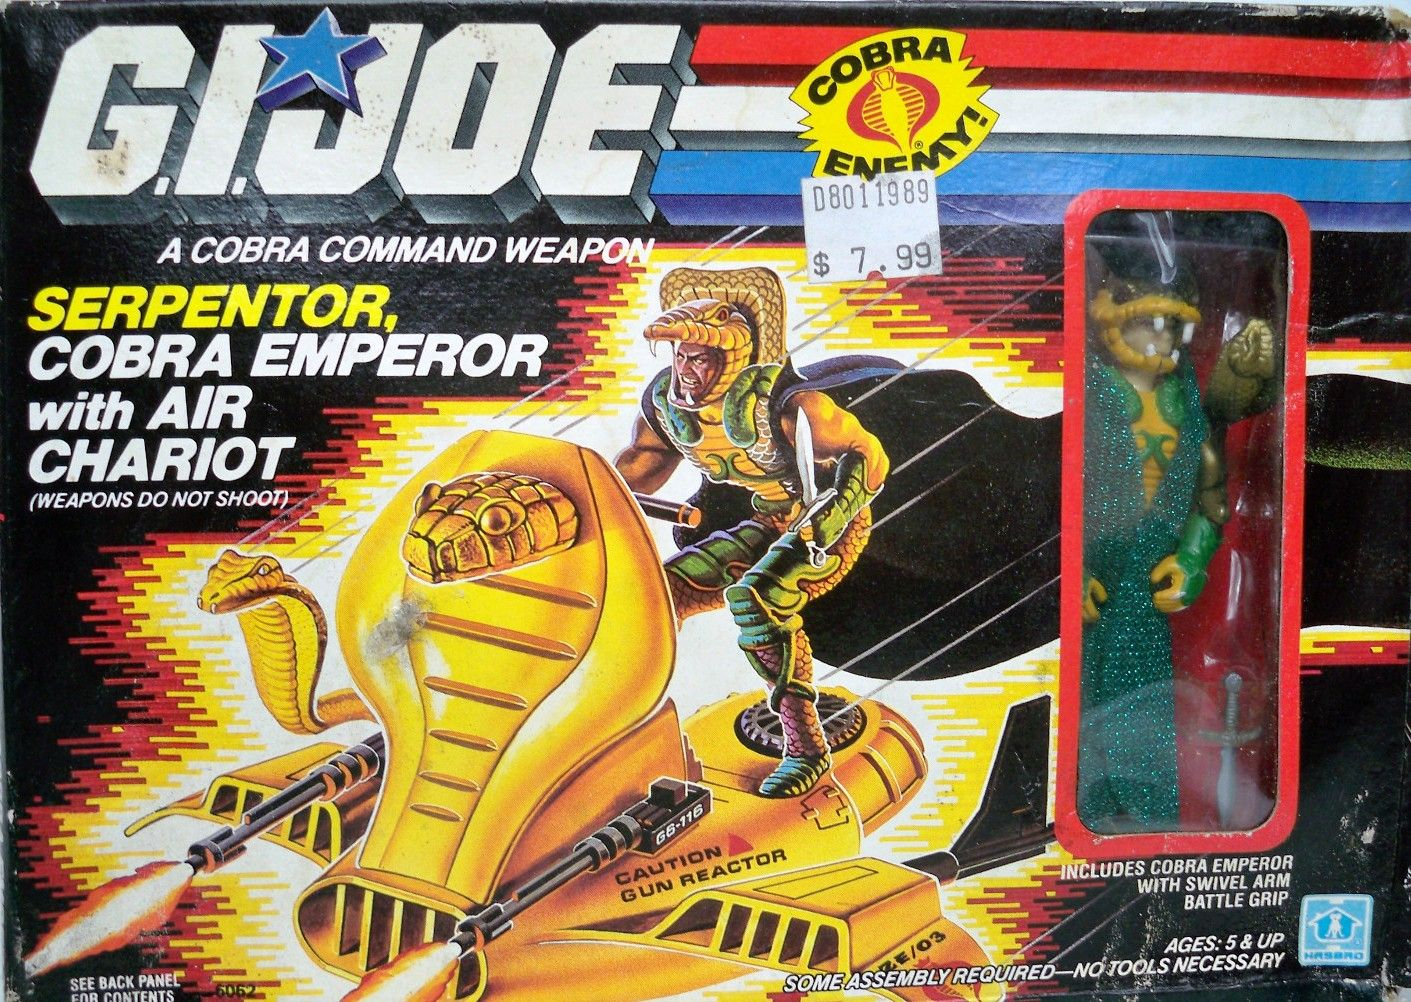 Shades of Serpentor, anyone?